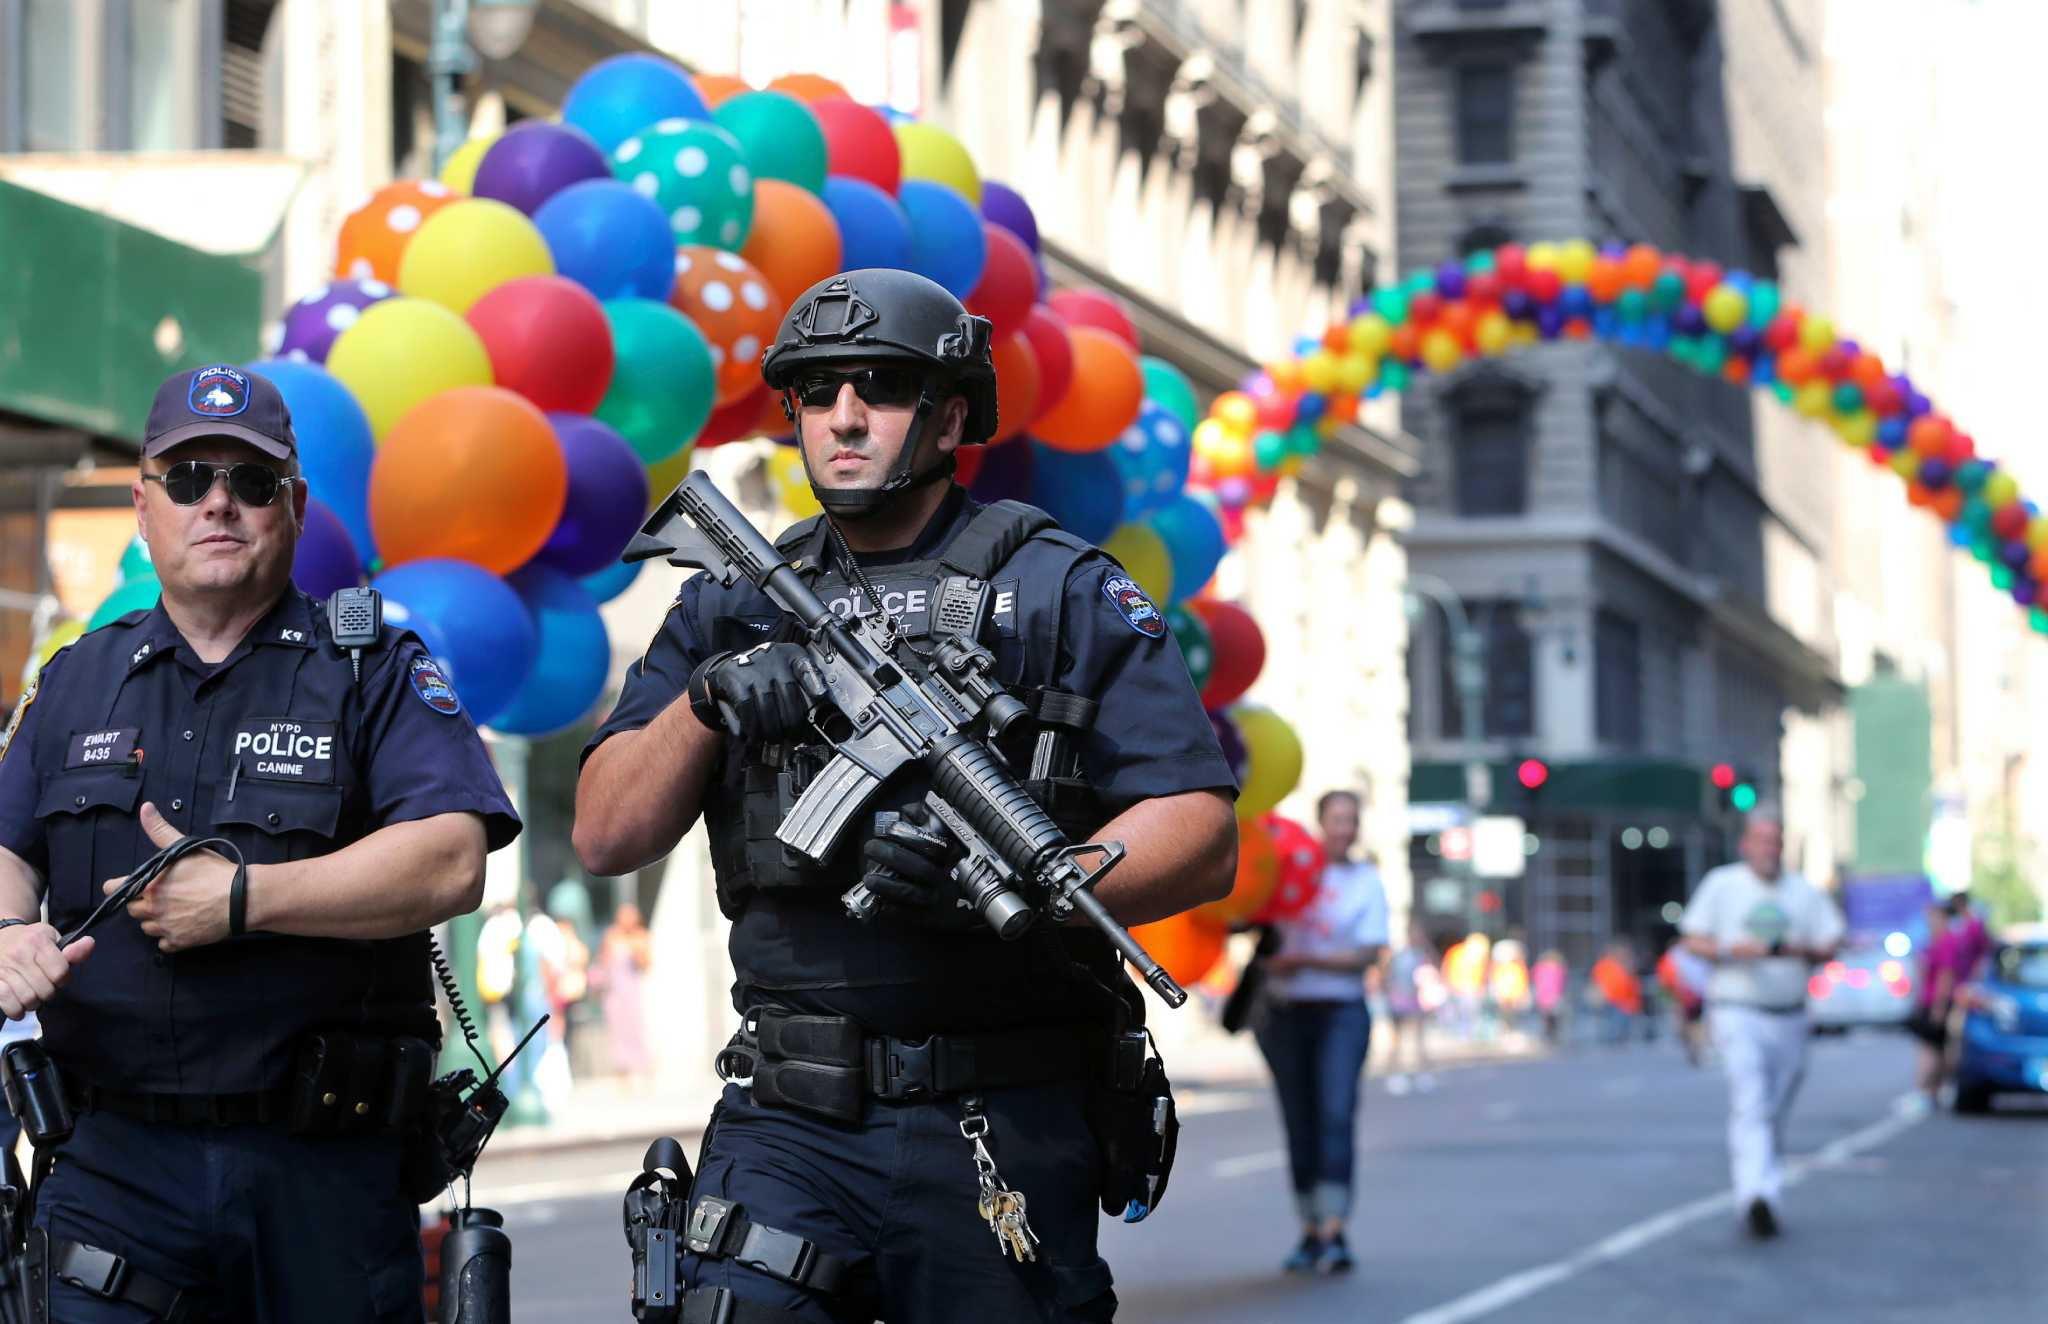 Heavily armed police patrol a Pride event in San Antonio, TX. Photo by Ashlee Rezin/Chicago Sun-Times via AP.